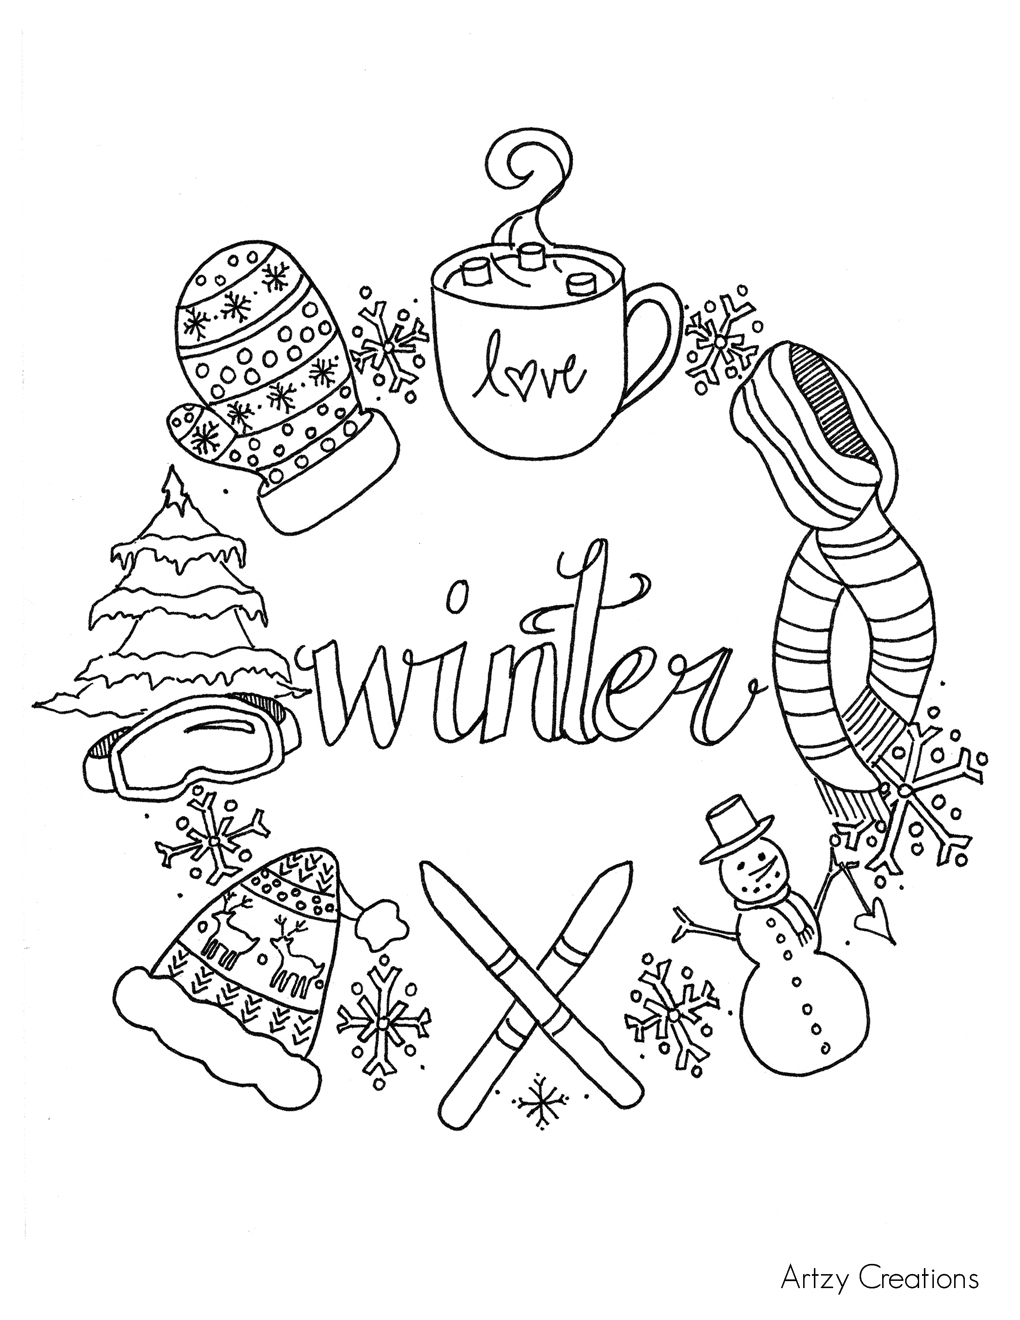 Free Winter Coloring Page  artzycreationscom